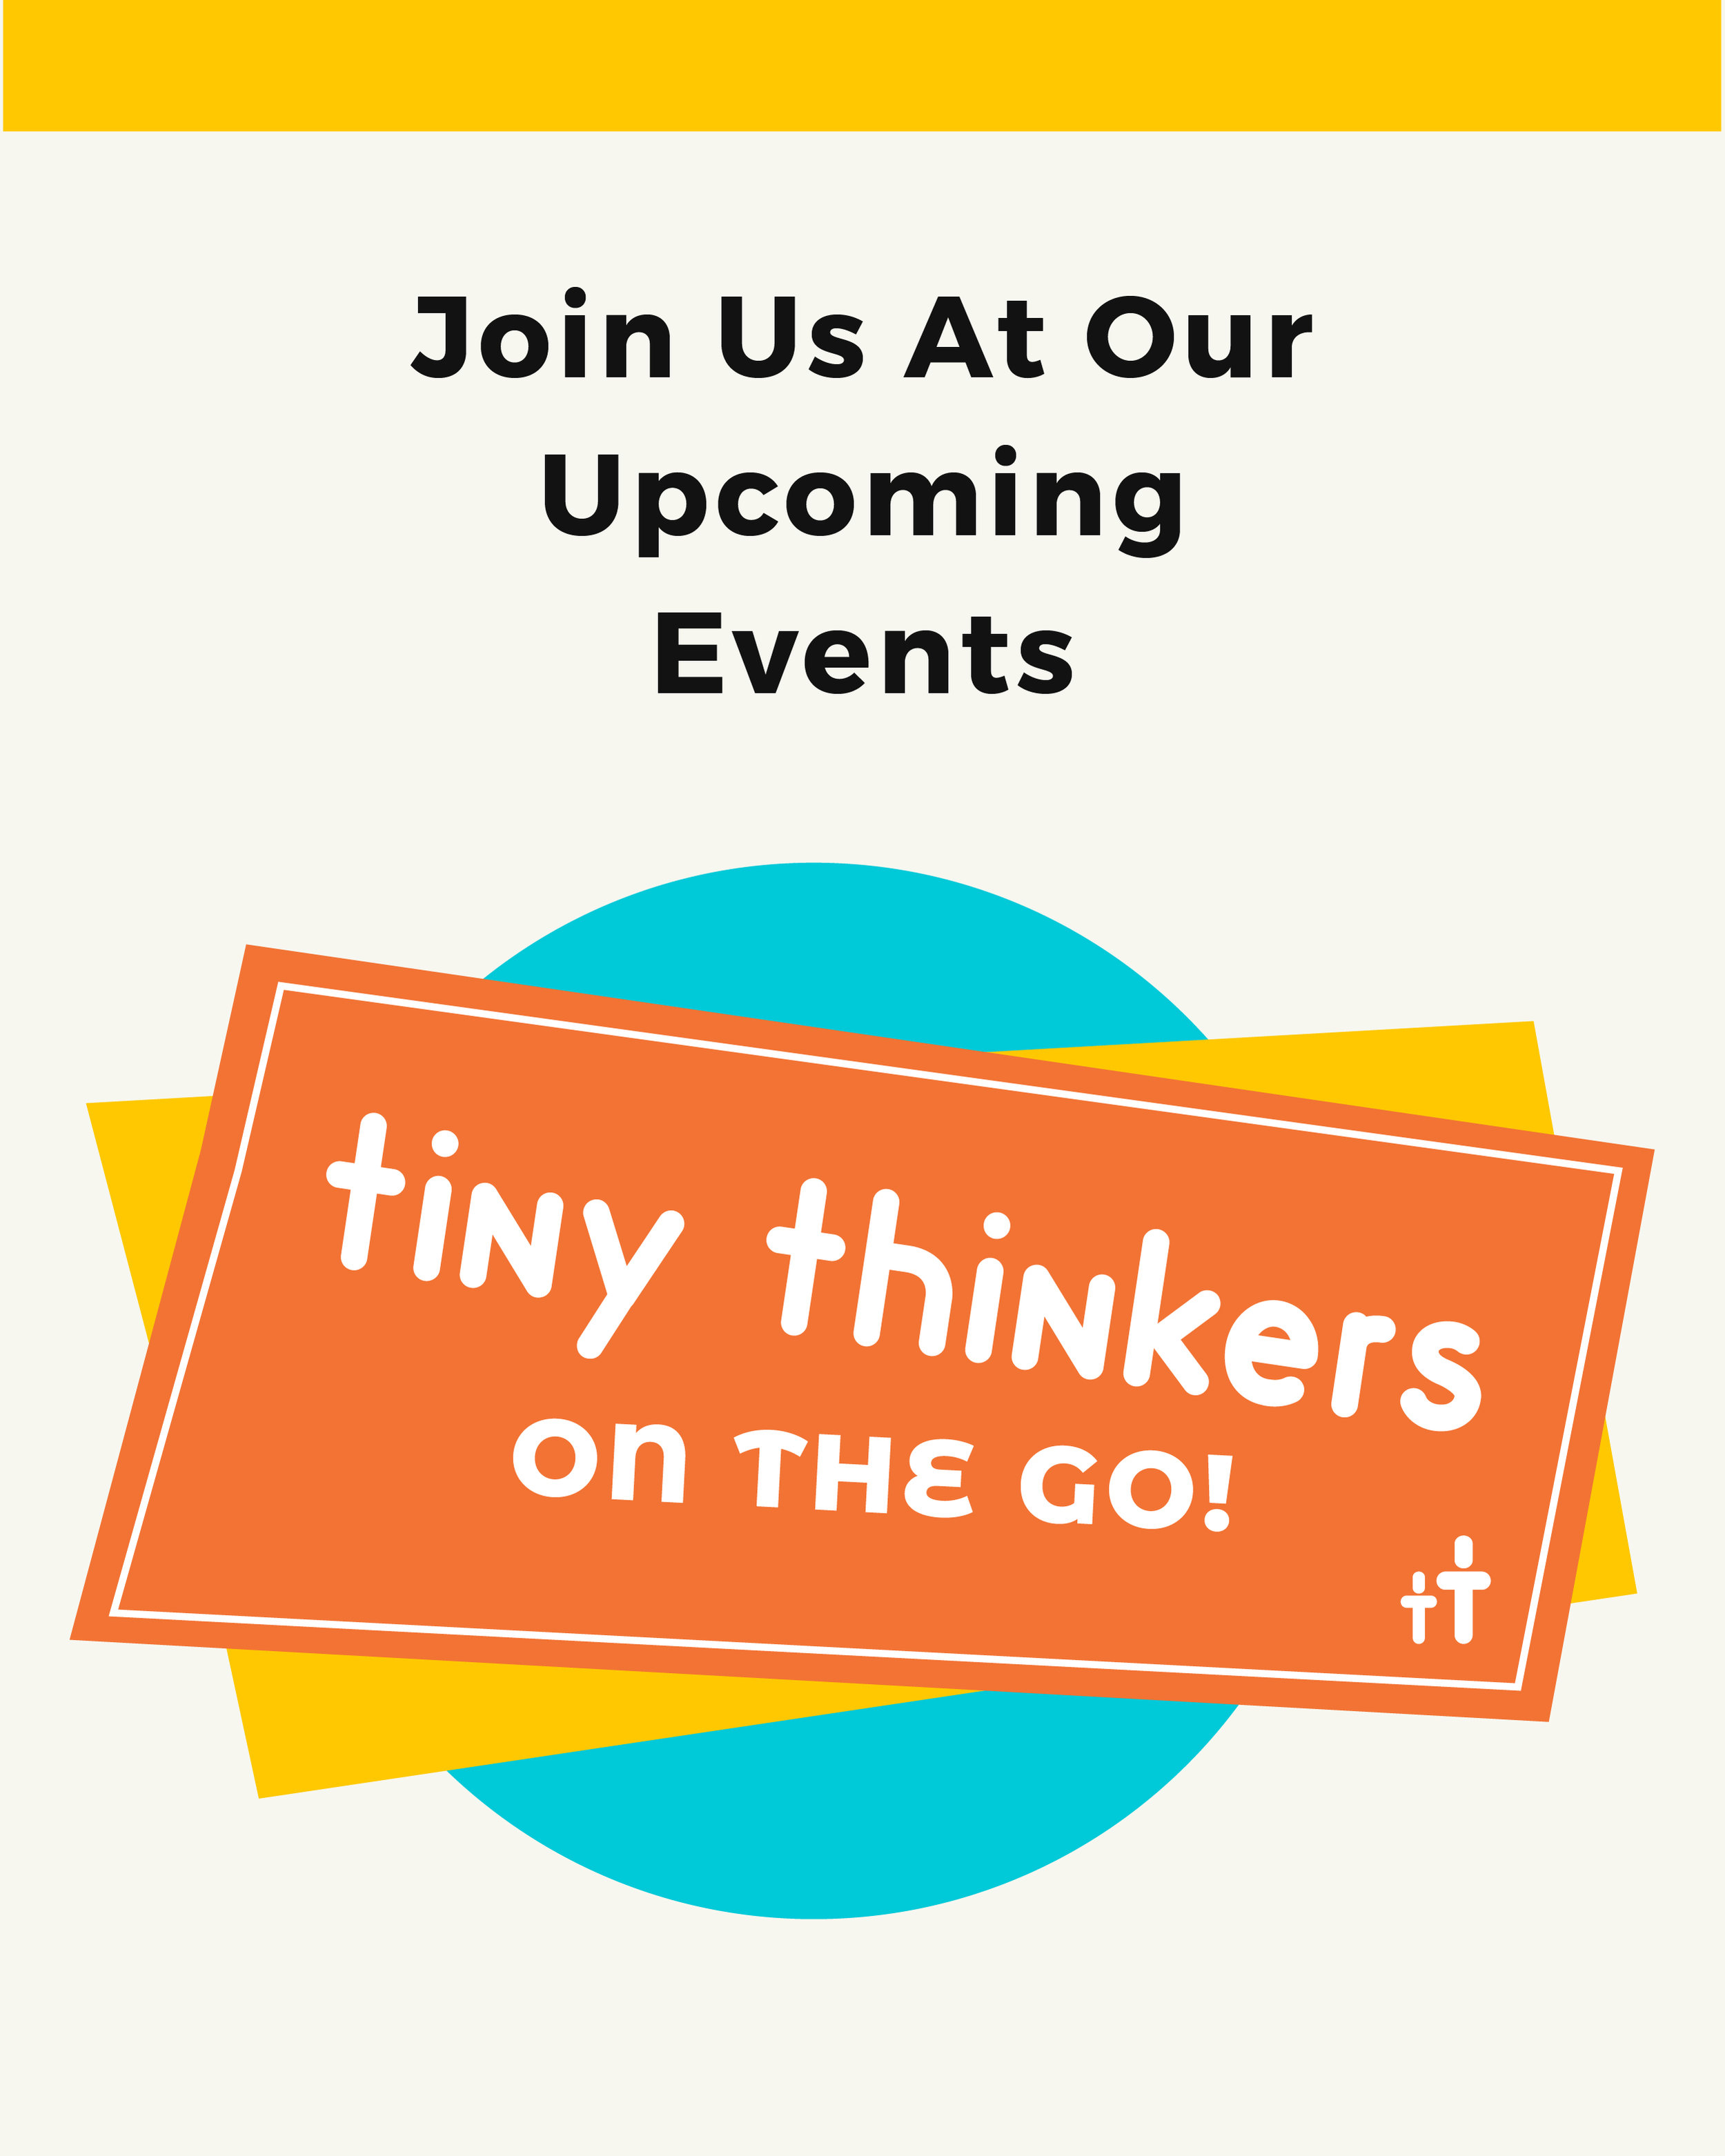 Join us at one of our upcoming FREE events to get some hands-on fun!  Every family will receive a Tiny Thinkers Starter Kit filled with all sorts of goodies.